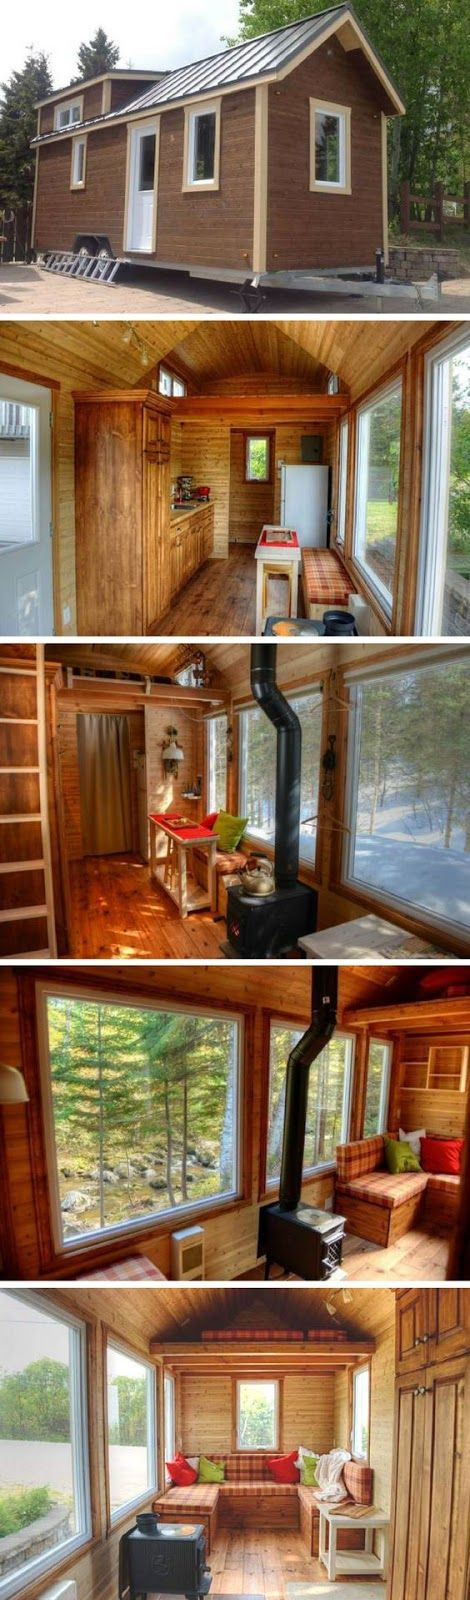 This tiny home was a self-build/DIY from Habitations MicroEvolution   Theyspecialize in the design of tiny houseson wheels.   Love this o...